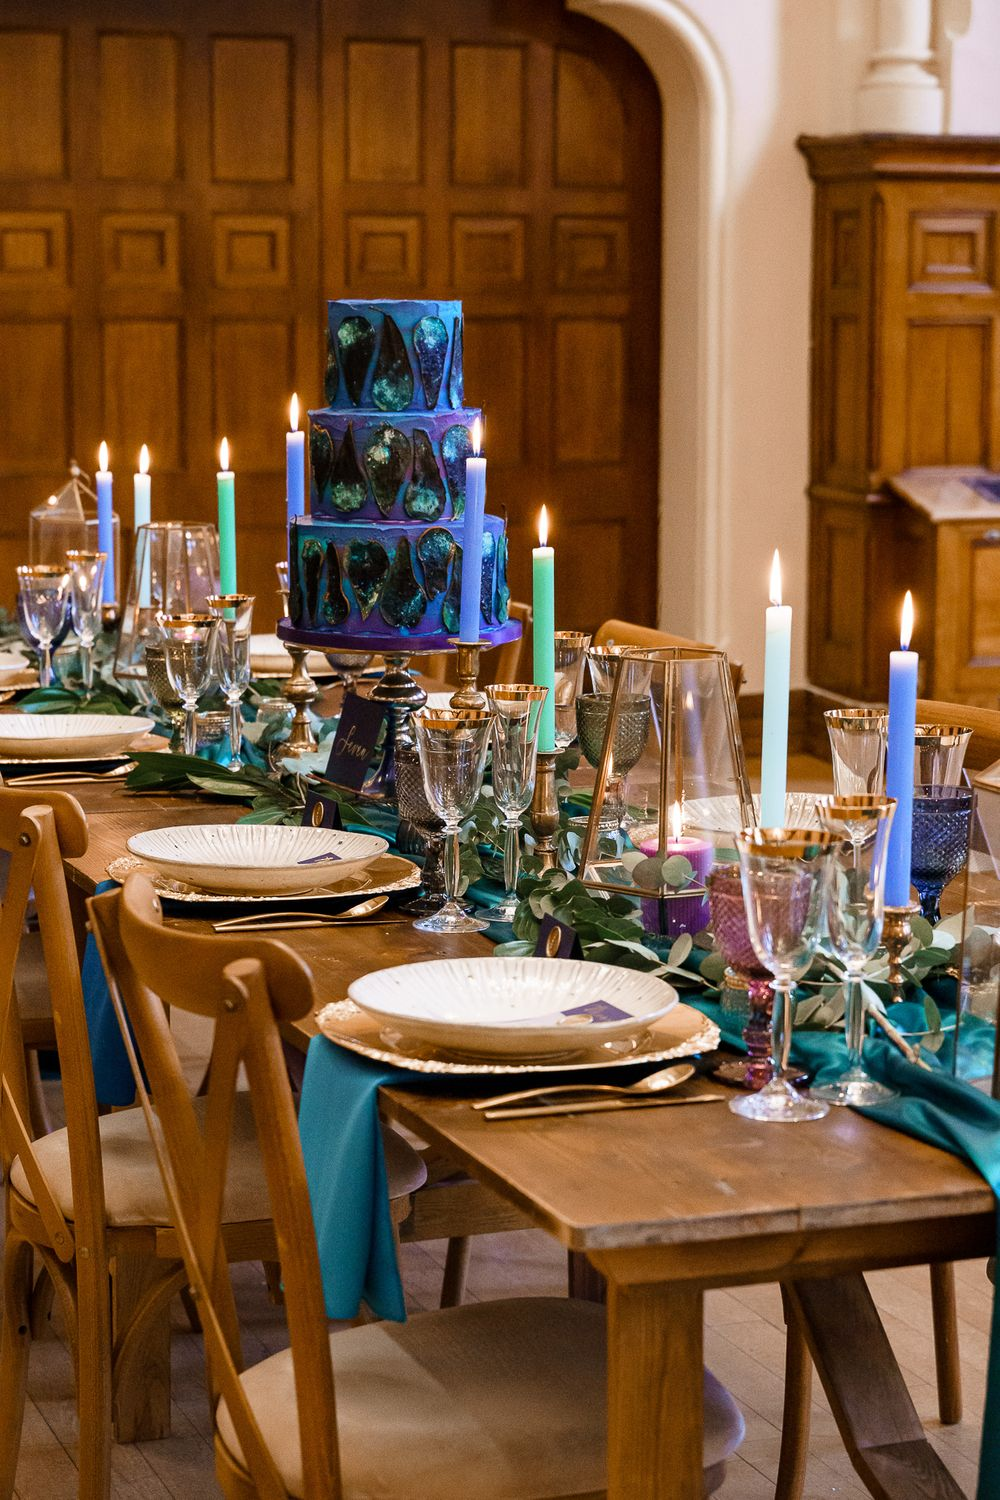 Peacock wedding theme table layout with coloured candles and teal table runner.